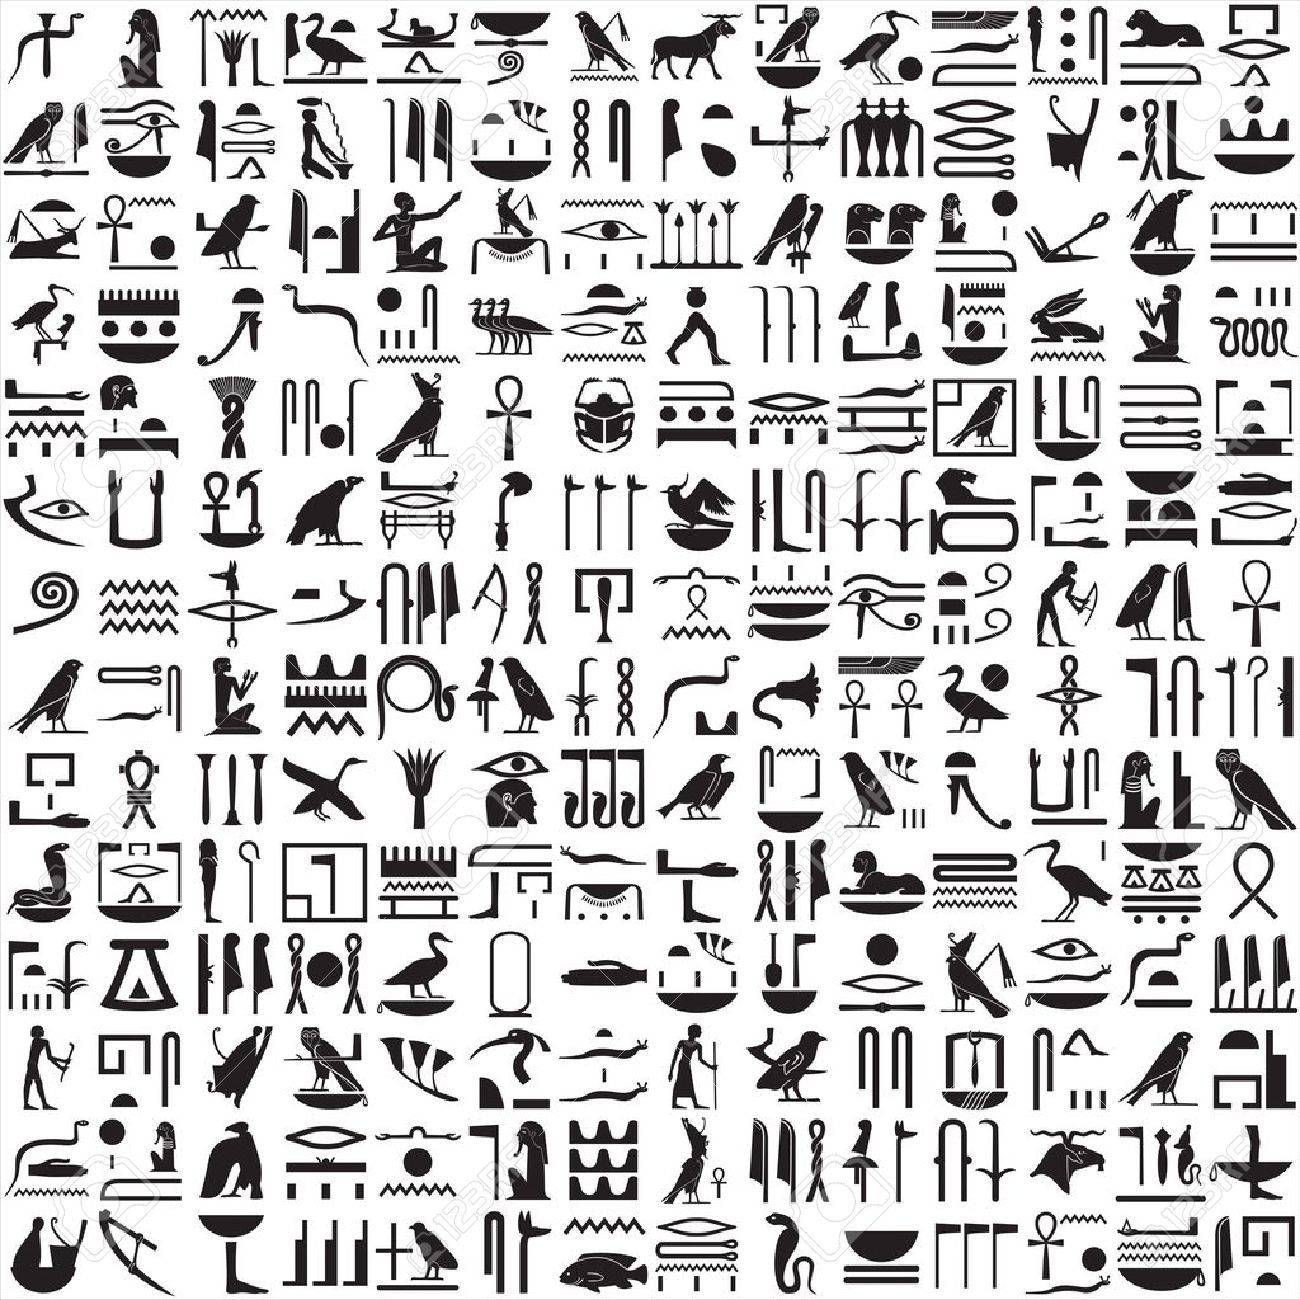 Ancient egyptian hieroglyphics clipart history of graphics art ancient egyptian hieroglyphics clipart biocorpaavc